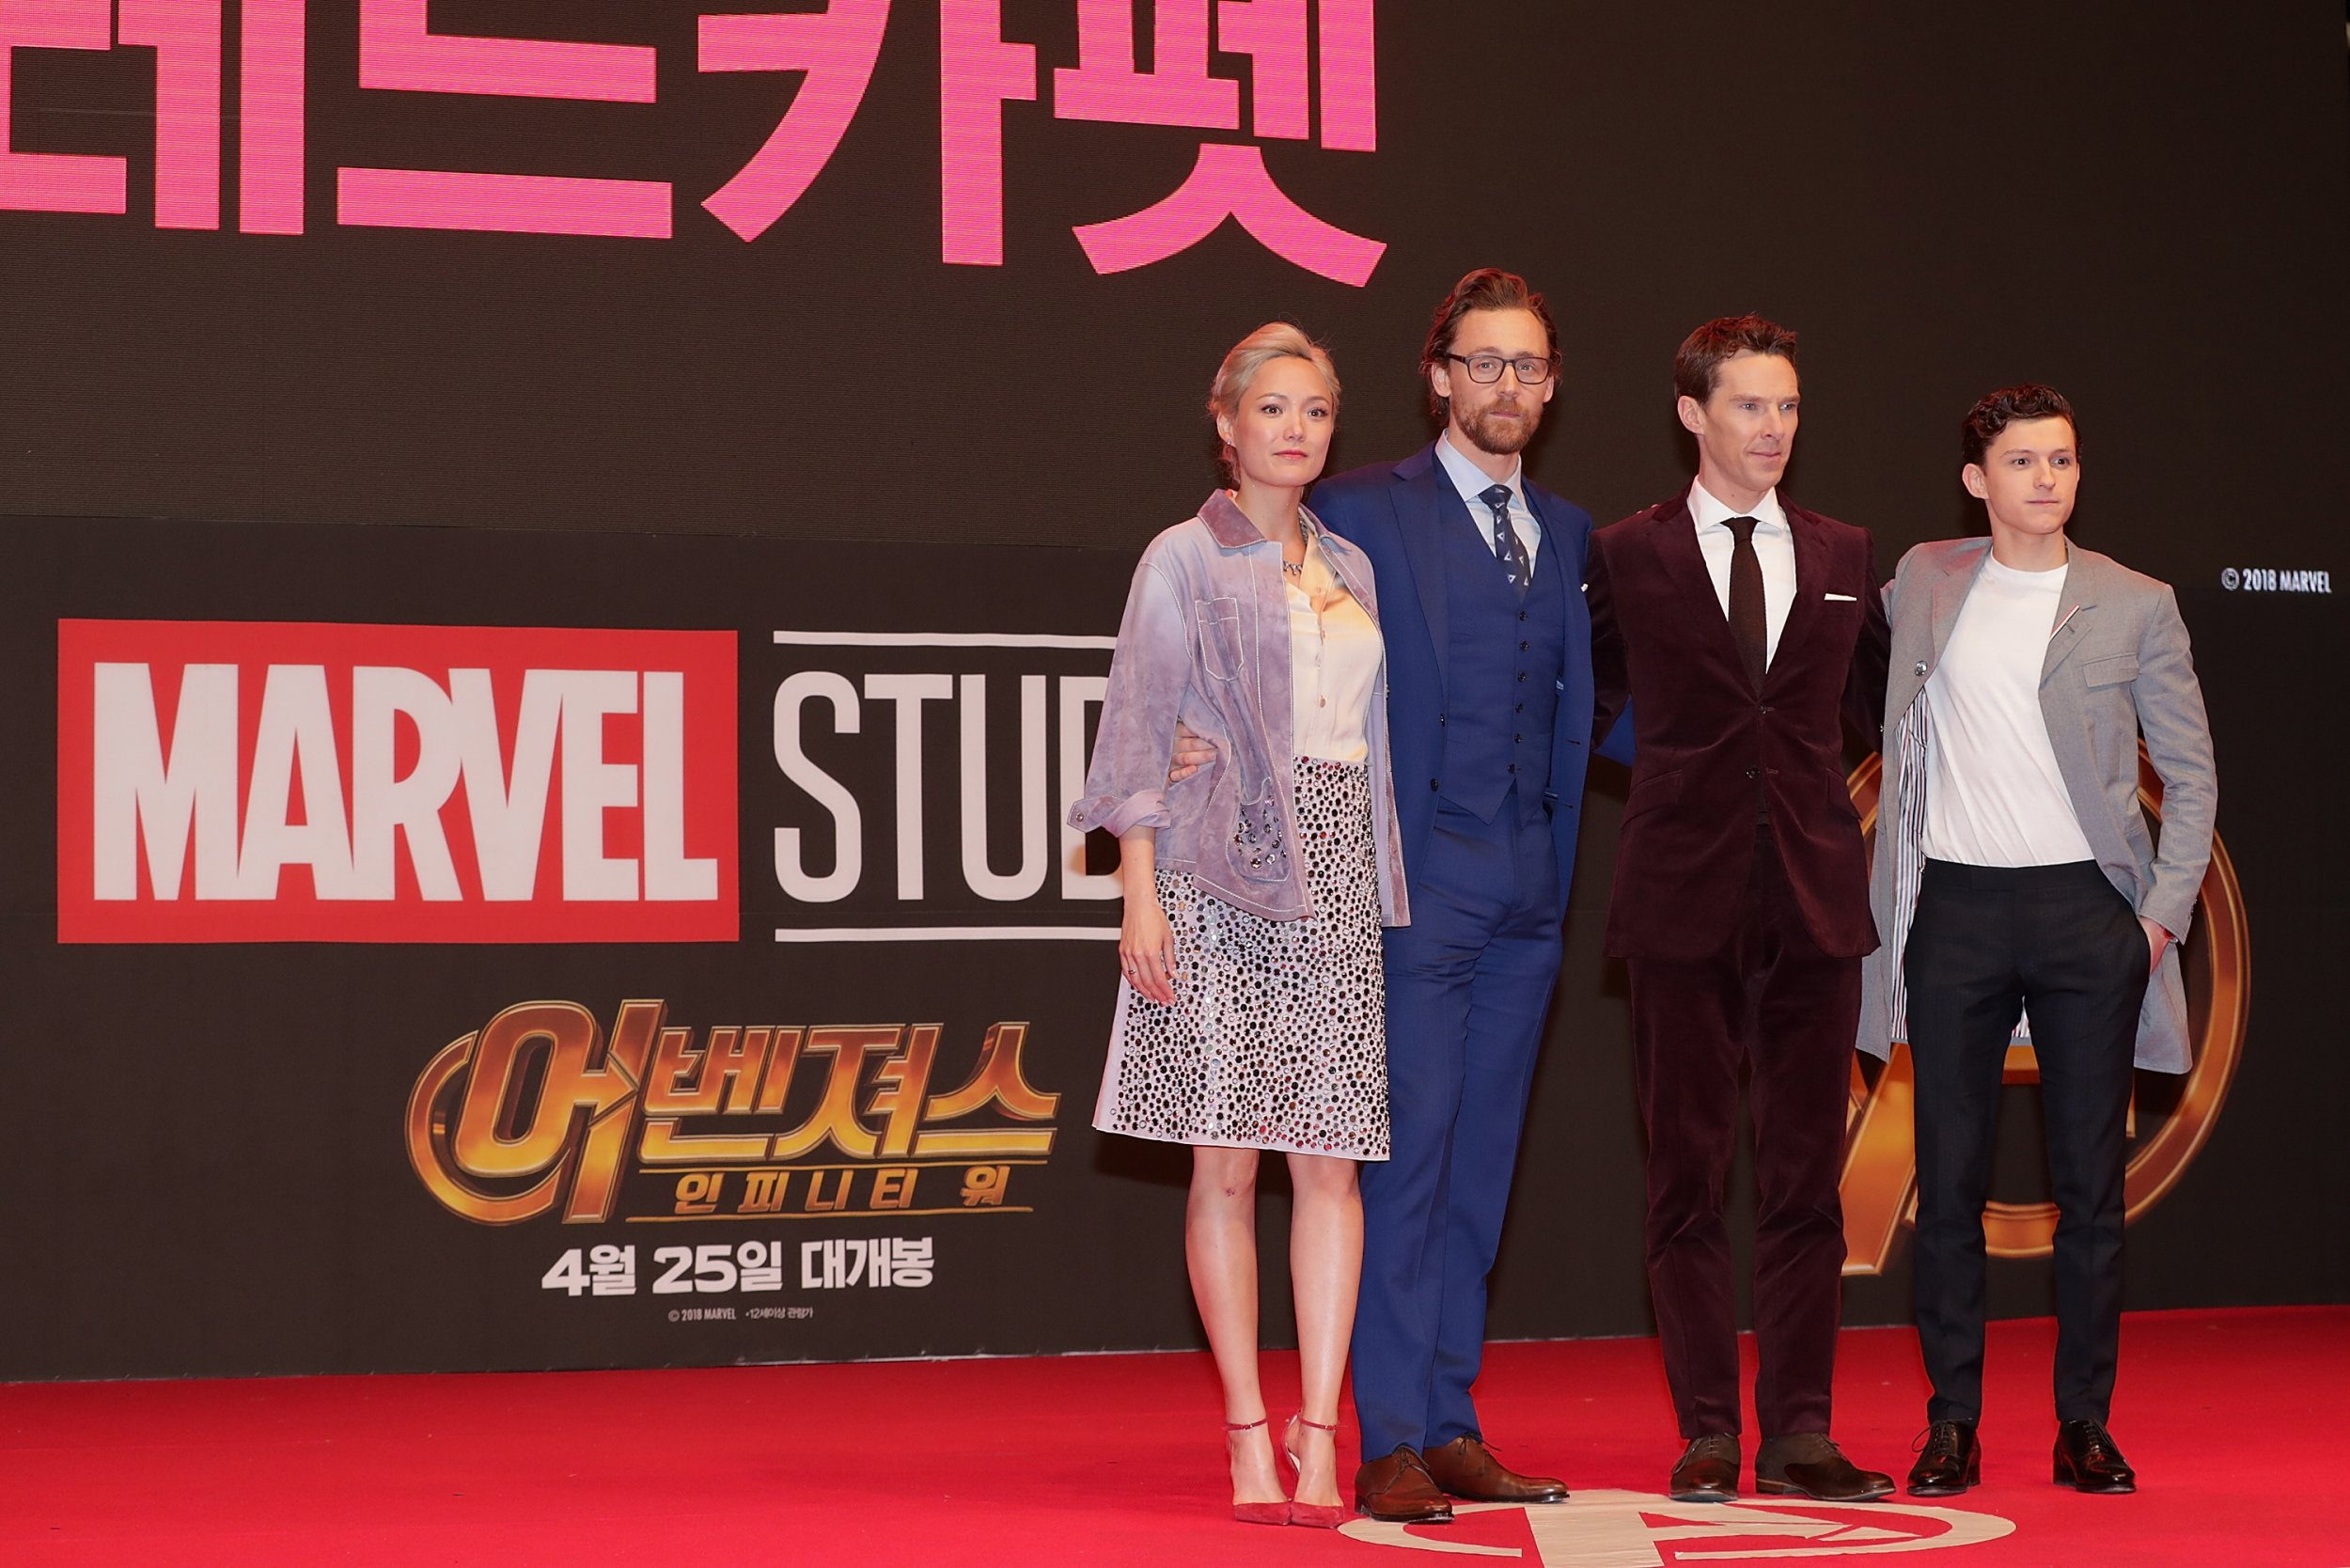 SEOUL, SOUTH KOREA - APRIL 12: (L-R) Pom Klementieff, Tom Hiddleston, Benedict Cumberbatch and Tom Holland attend the Seoul premiere of 'Avengers Infinity War' on April 12, 2018 in Seoul, South Korea. (Photo by Han Myung-Gu/WireImage)